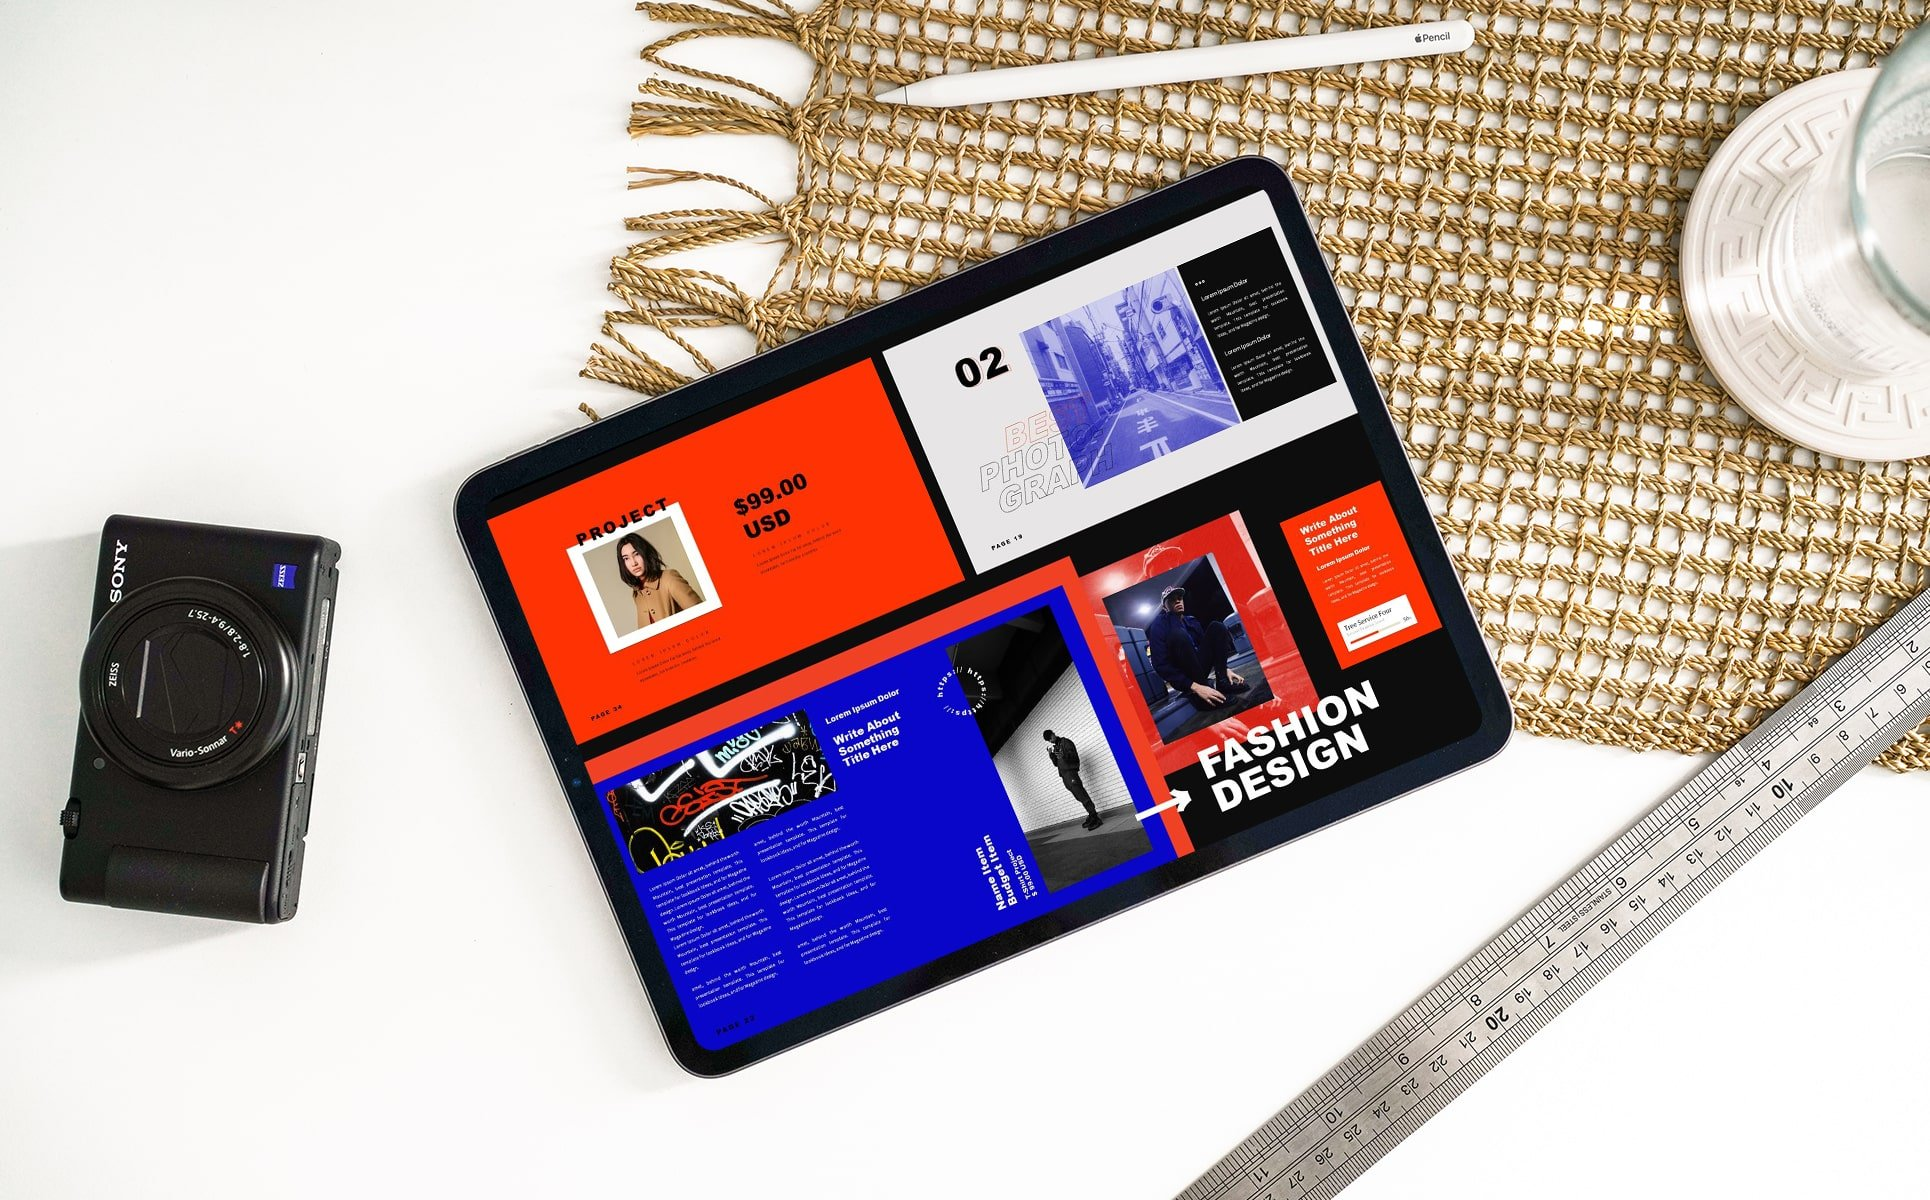 Tablet option of the Fashion Design Keynote Template.